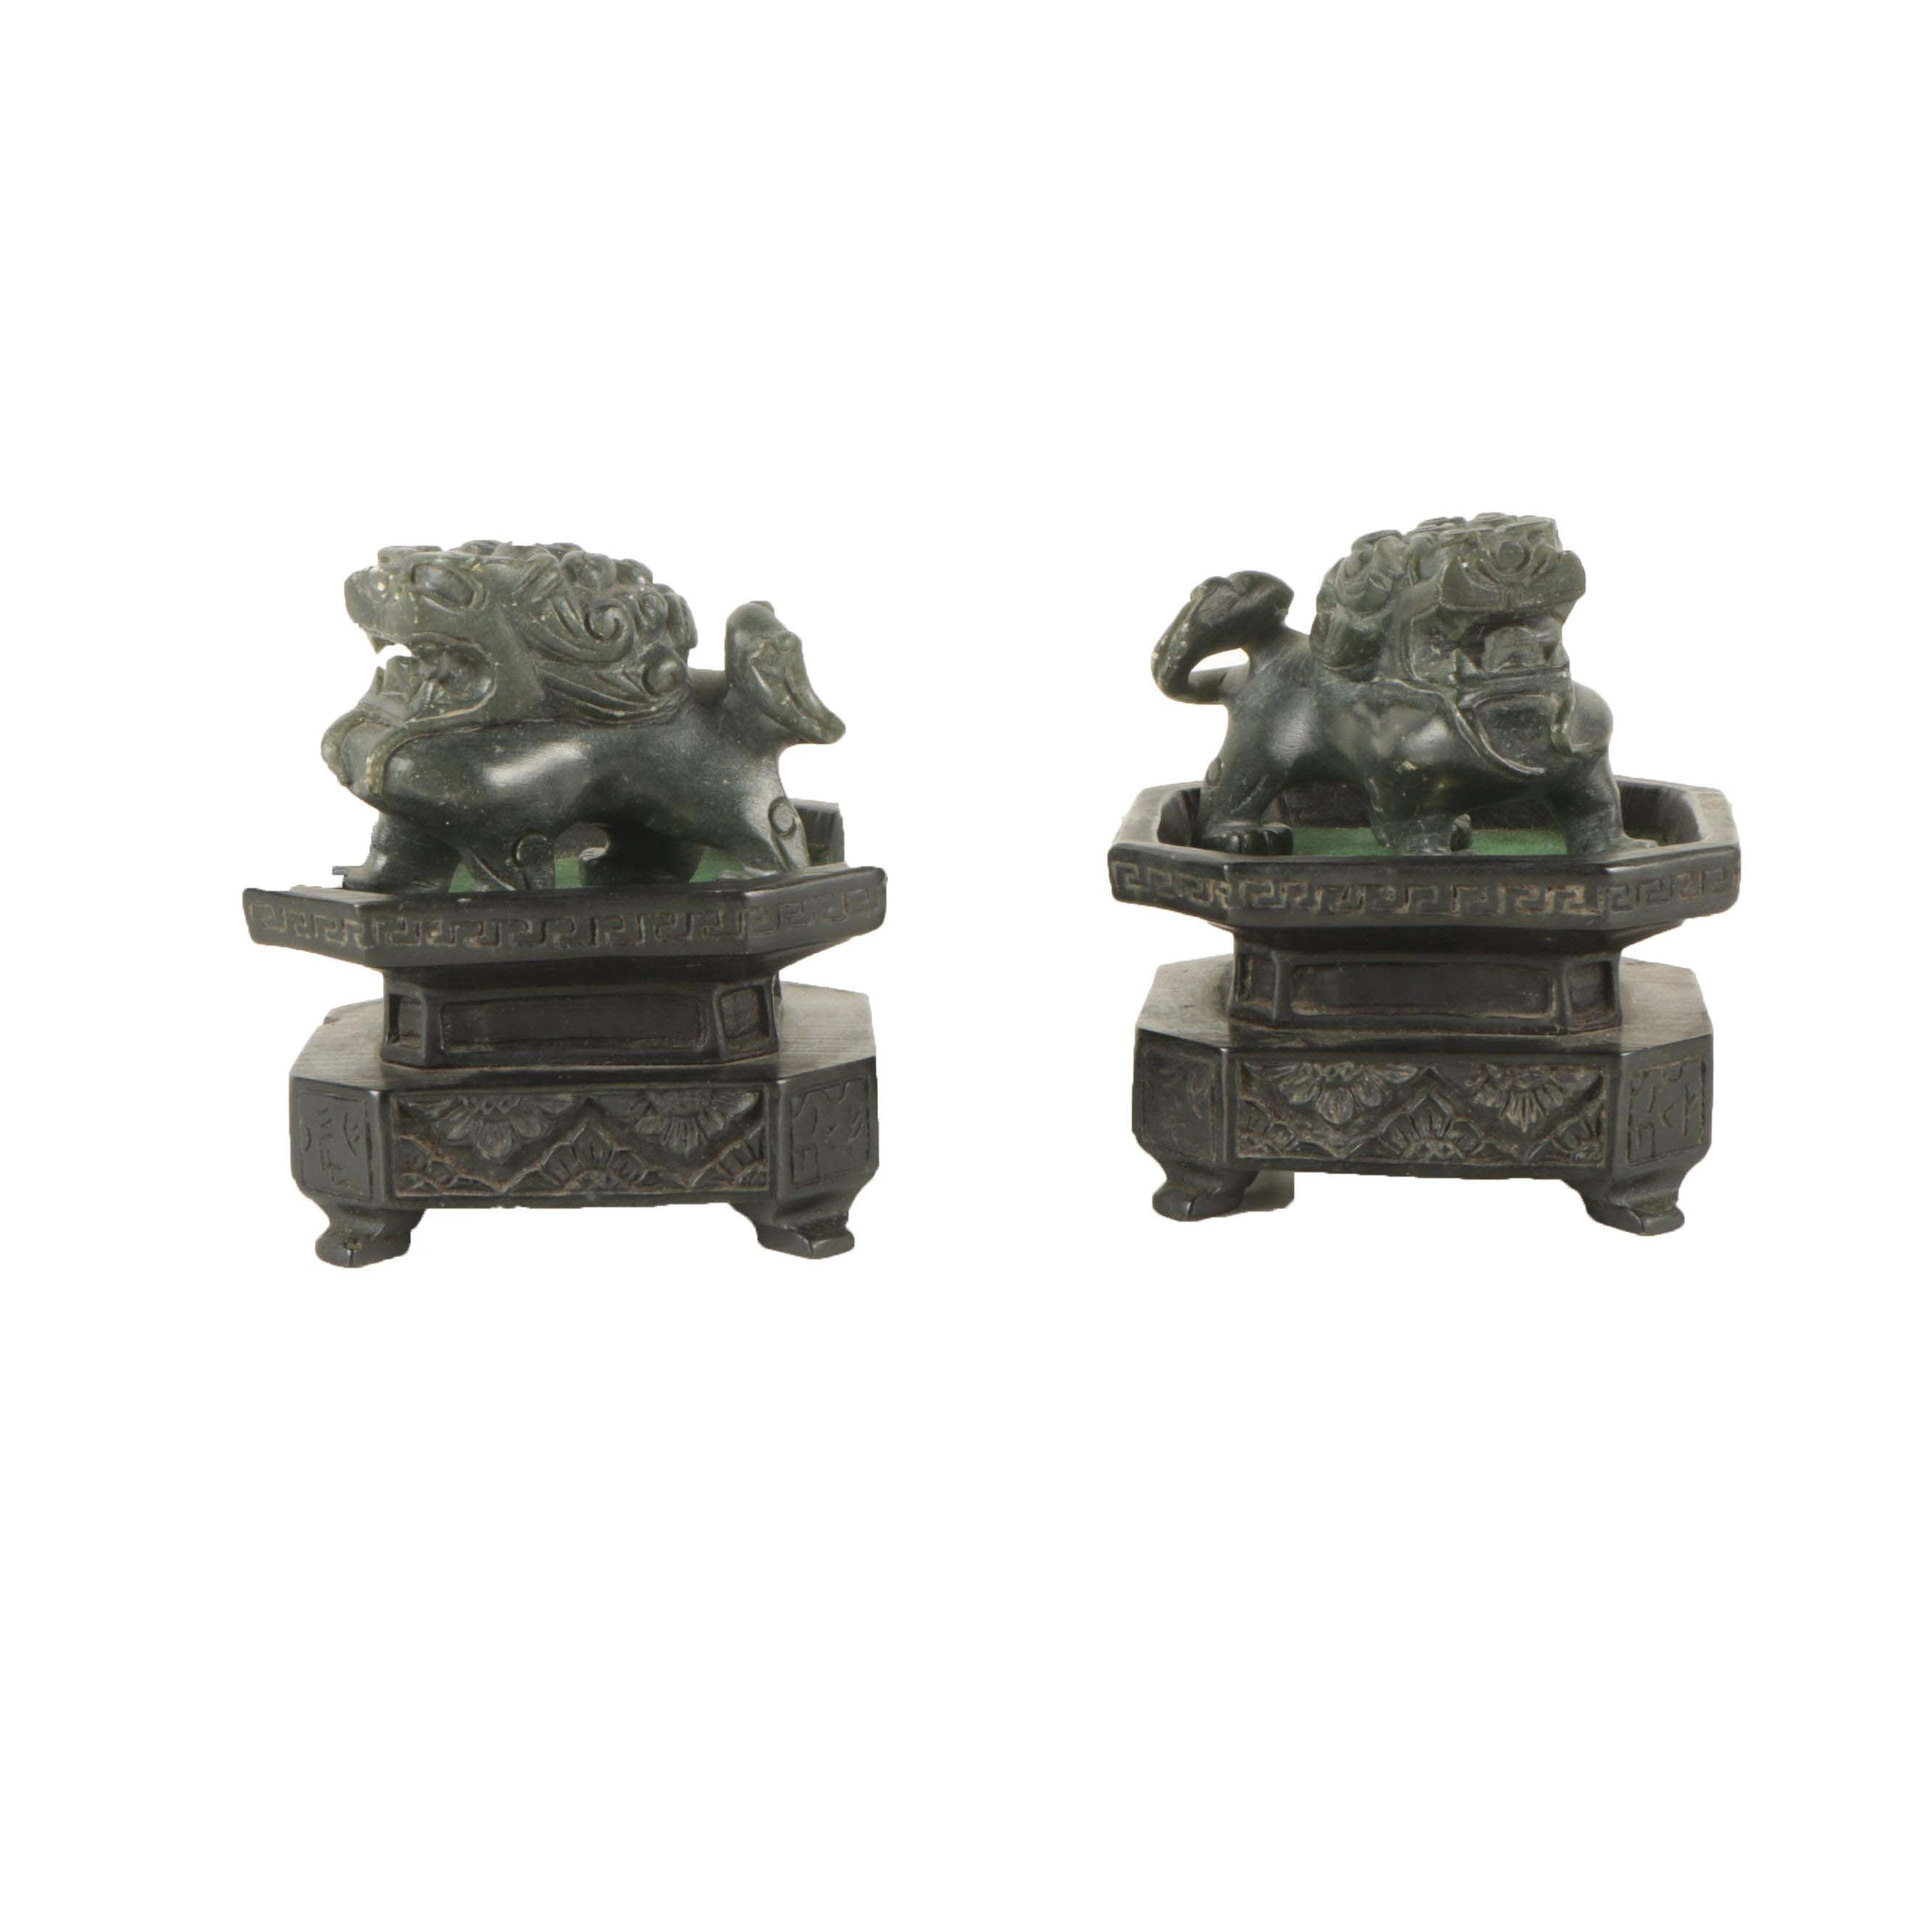 East Asian Inspired Guardian Lions Sculptures